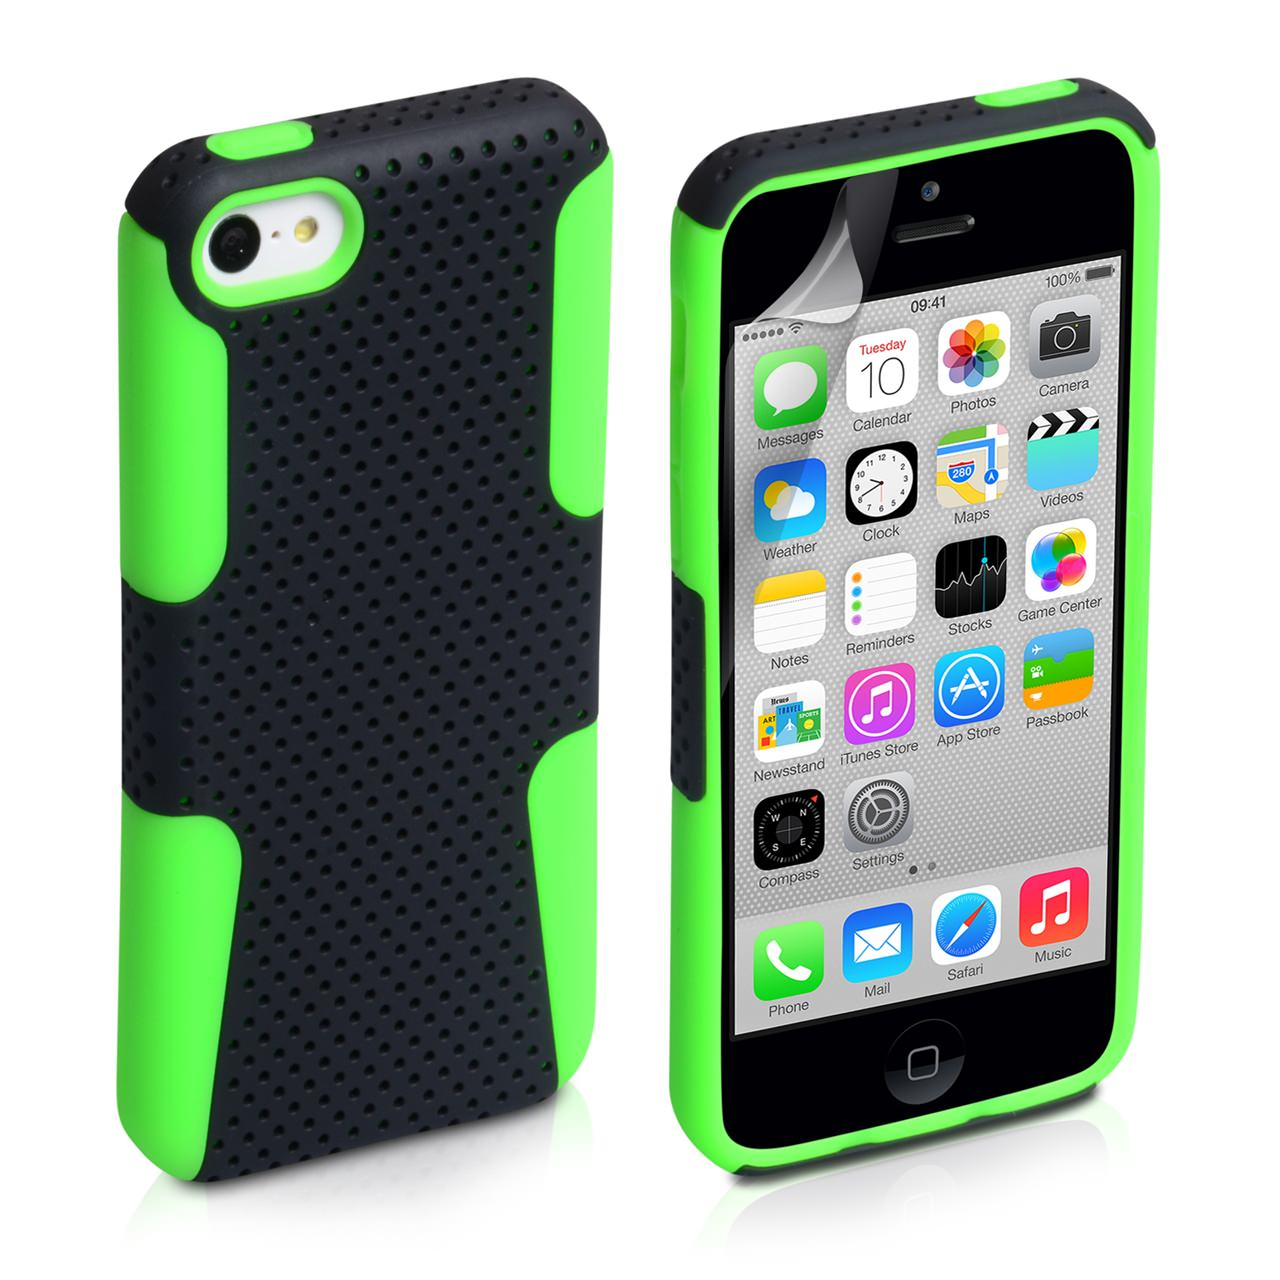 YouSave Accessories iPhone 5C Mesh Combo Case - Green